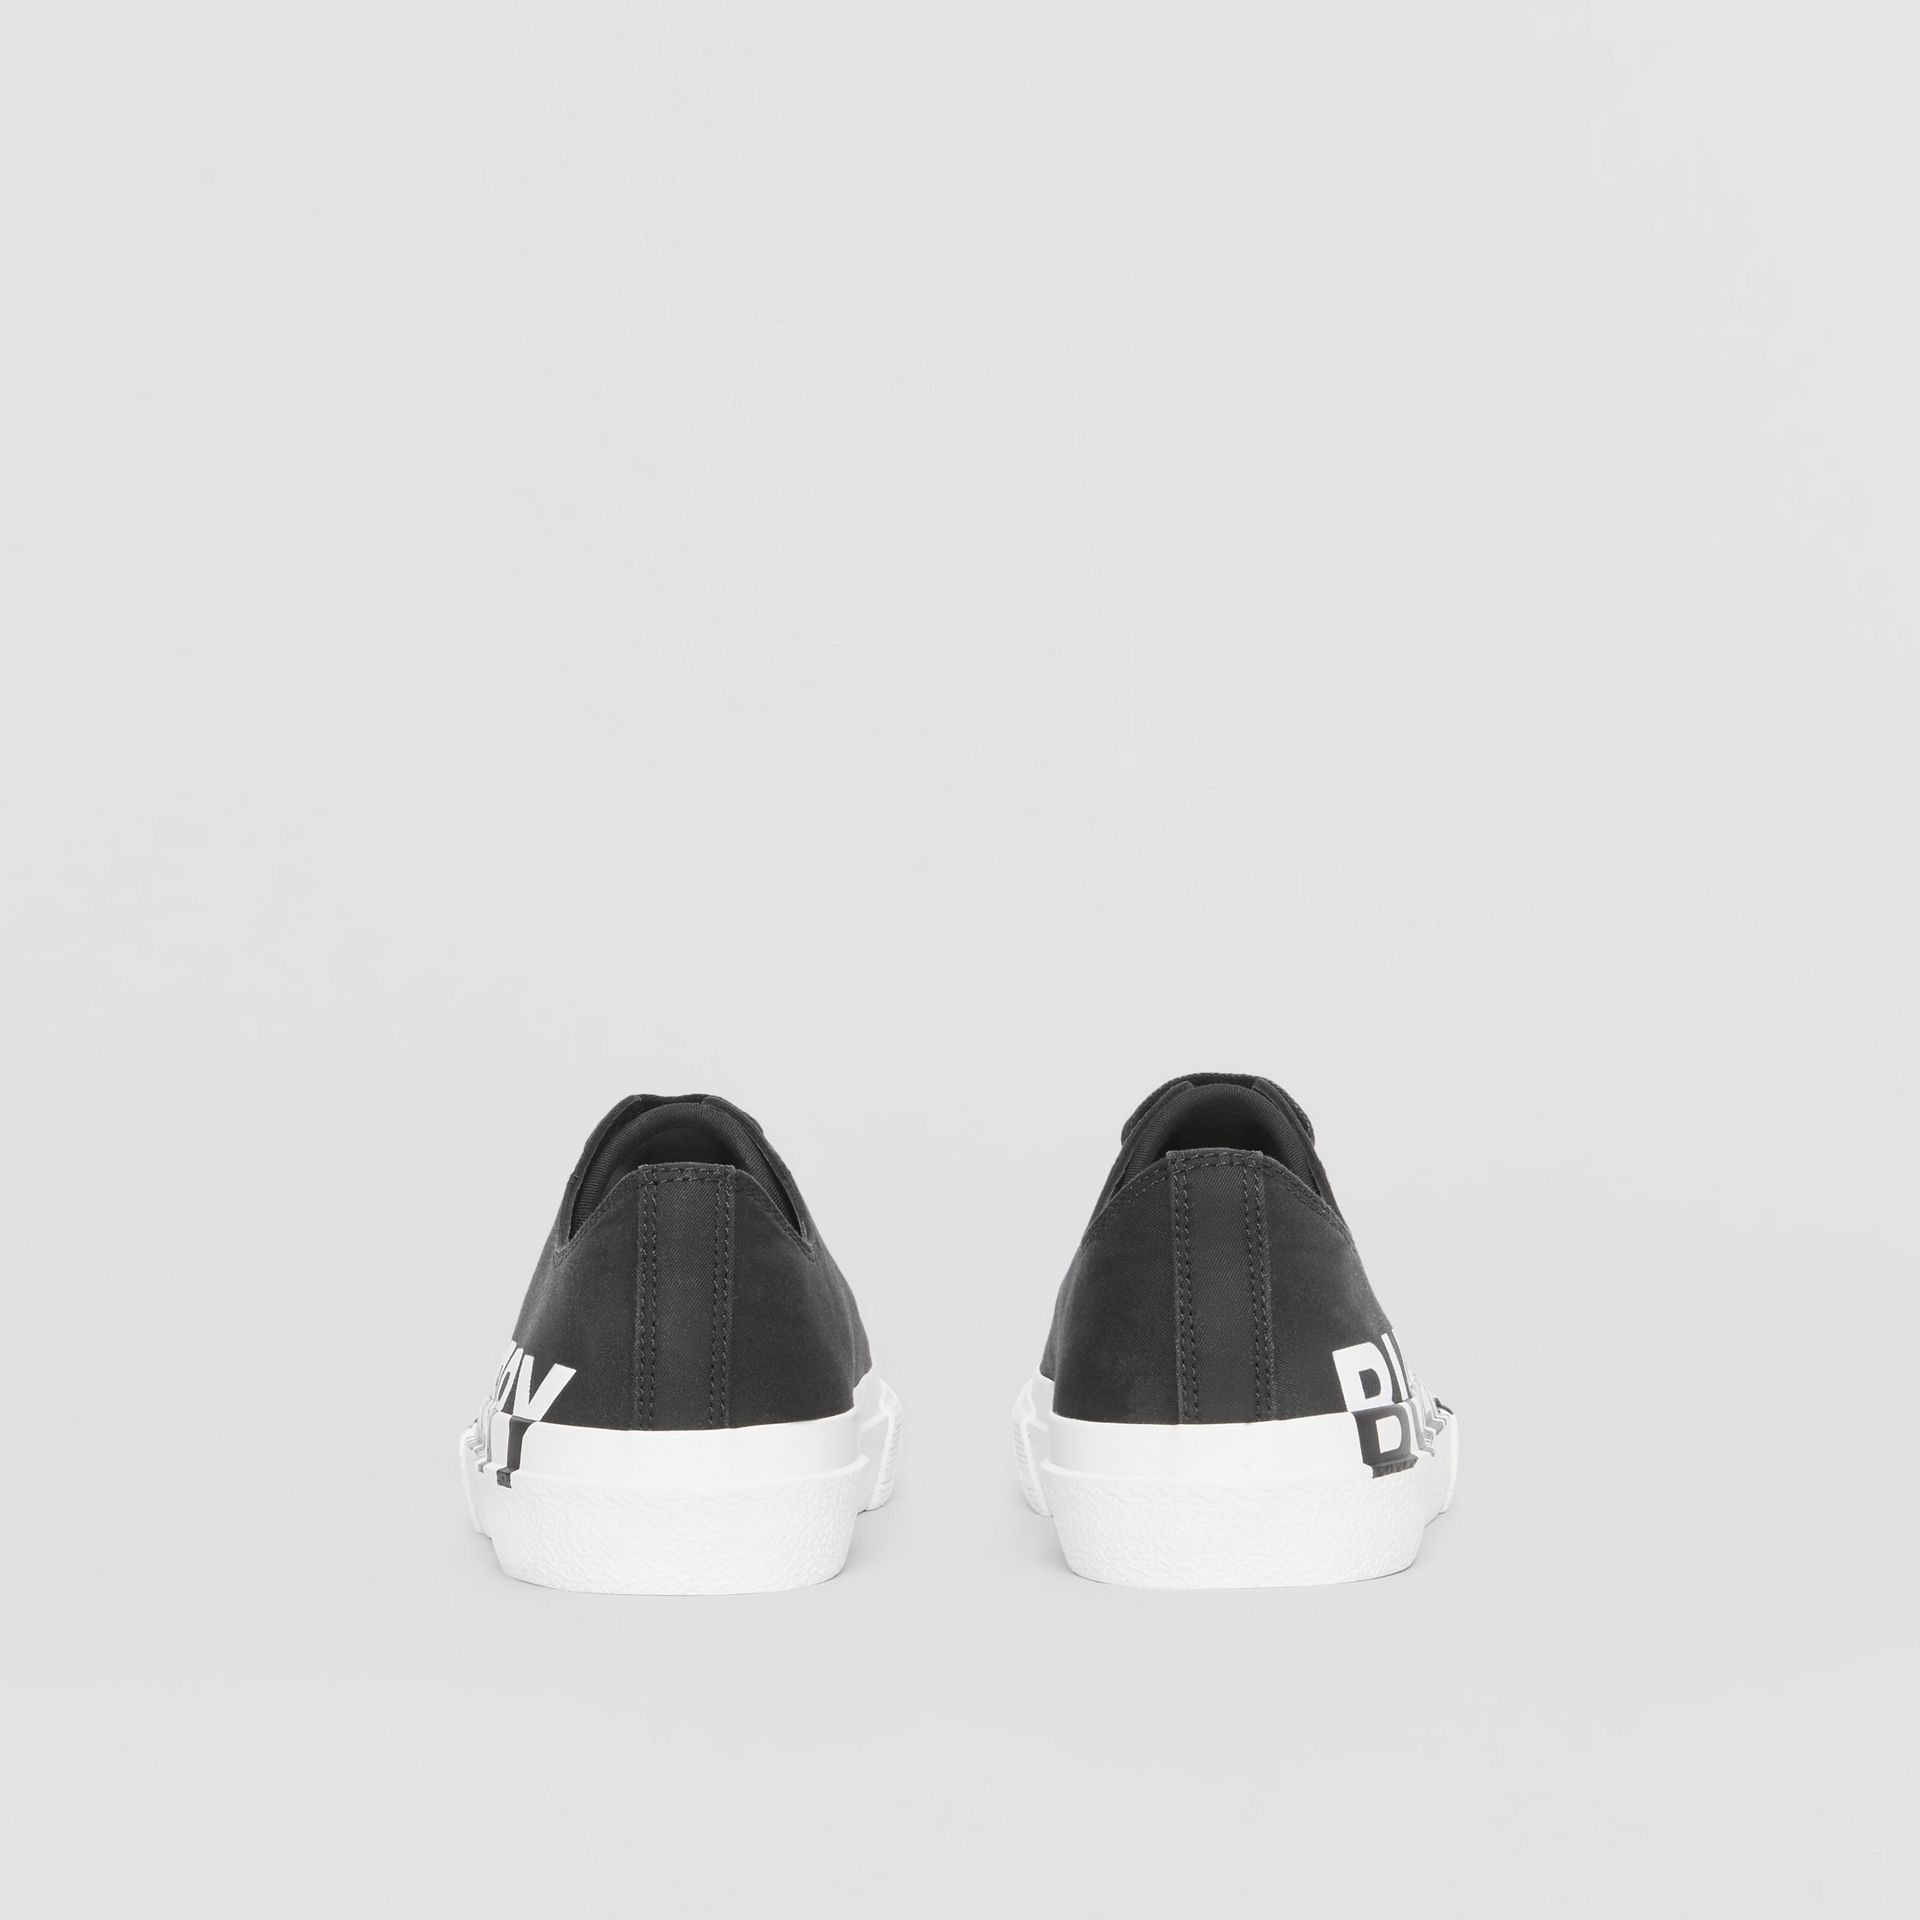 Logo Print Two-tone Cotton Gabardine Sneakers in Black/white - Women | Burberry Canada - gallery image 4